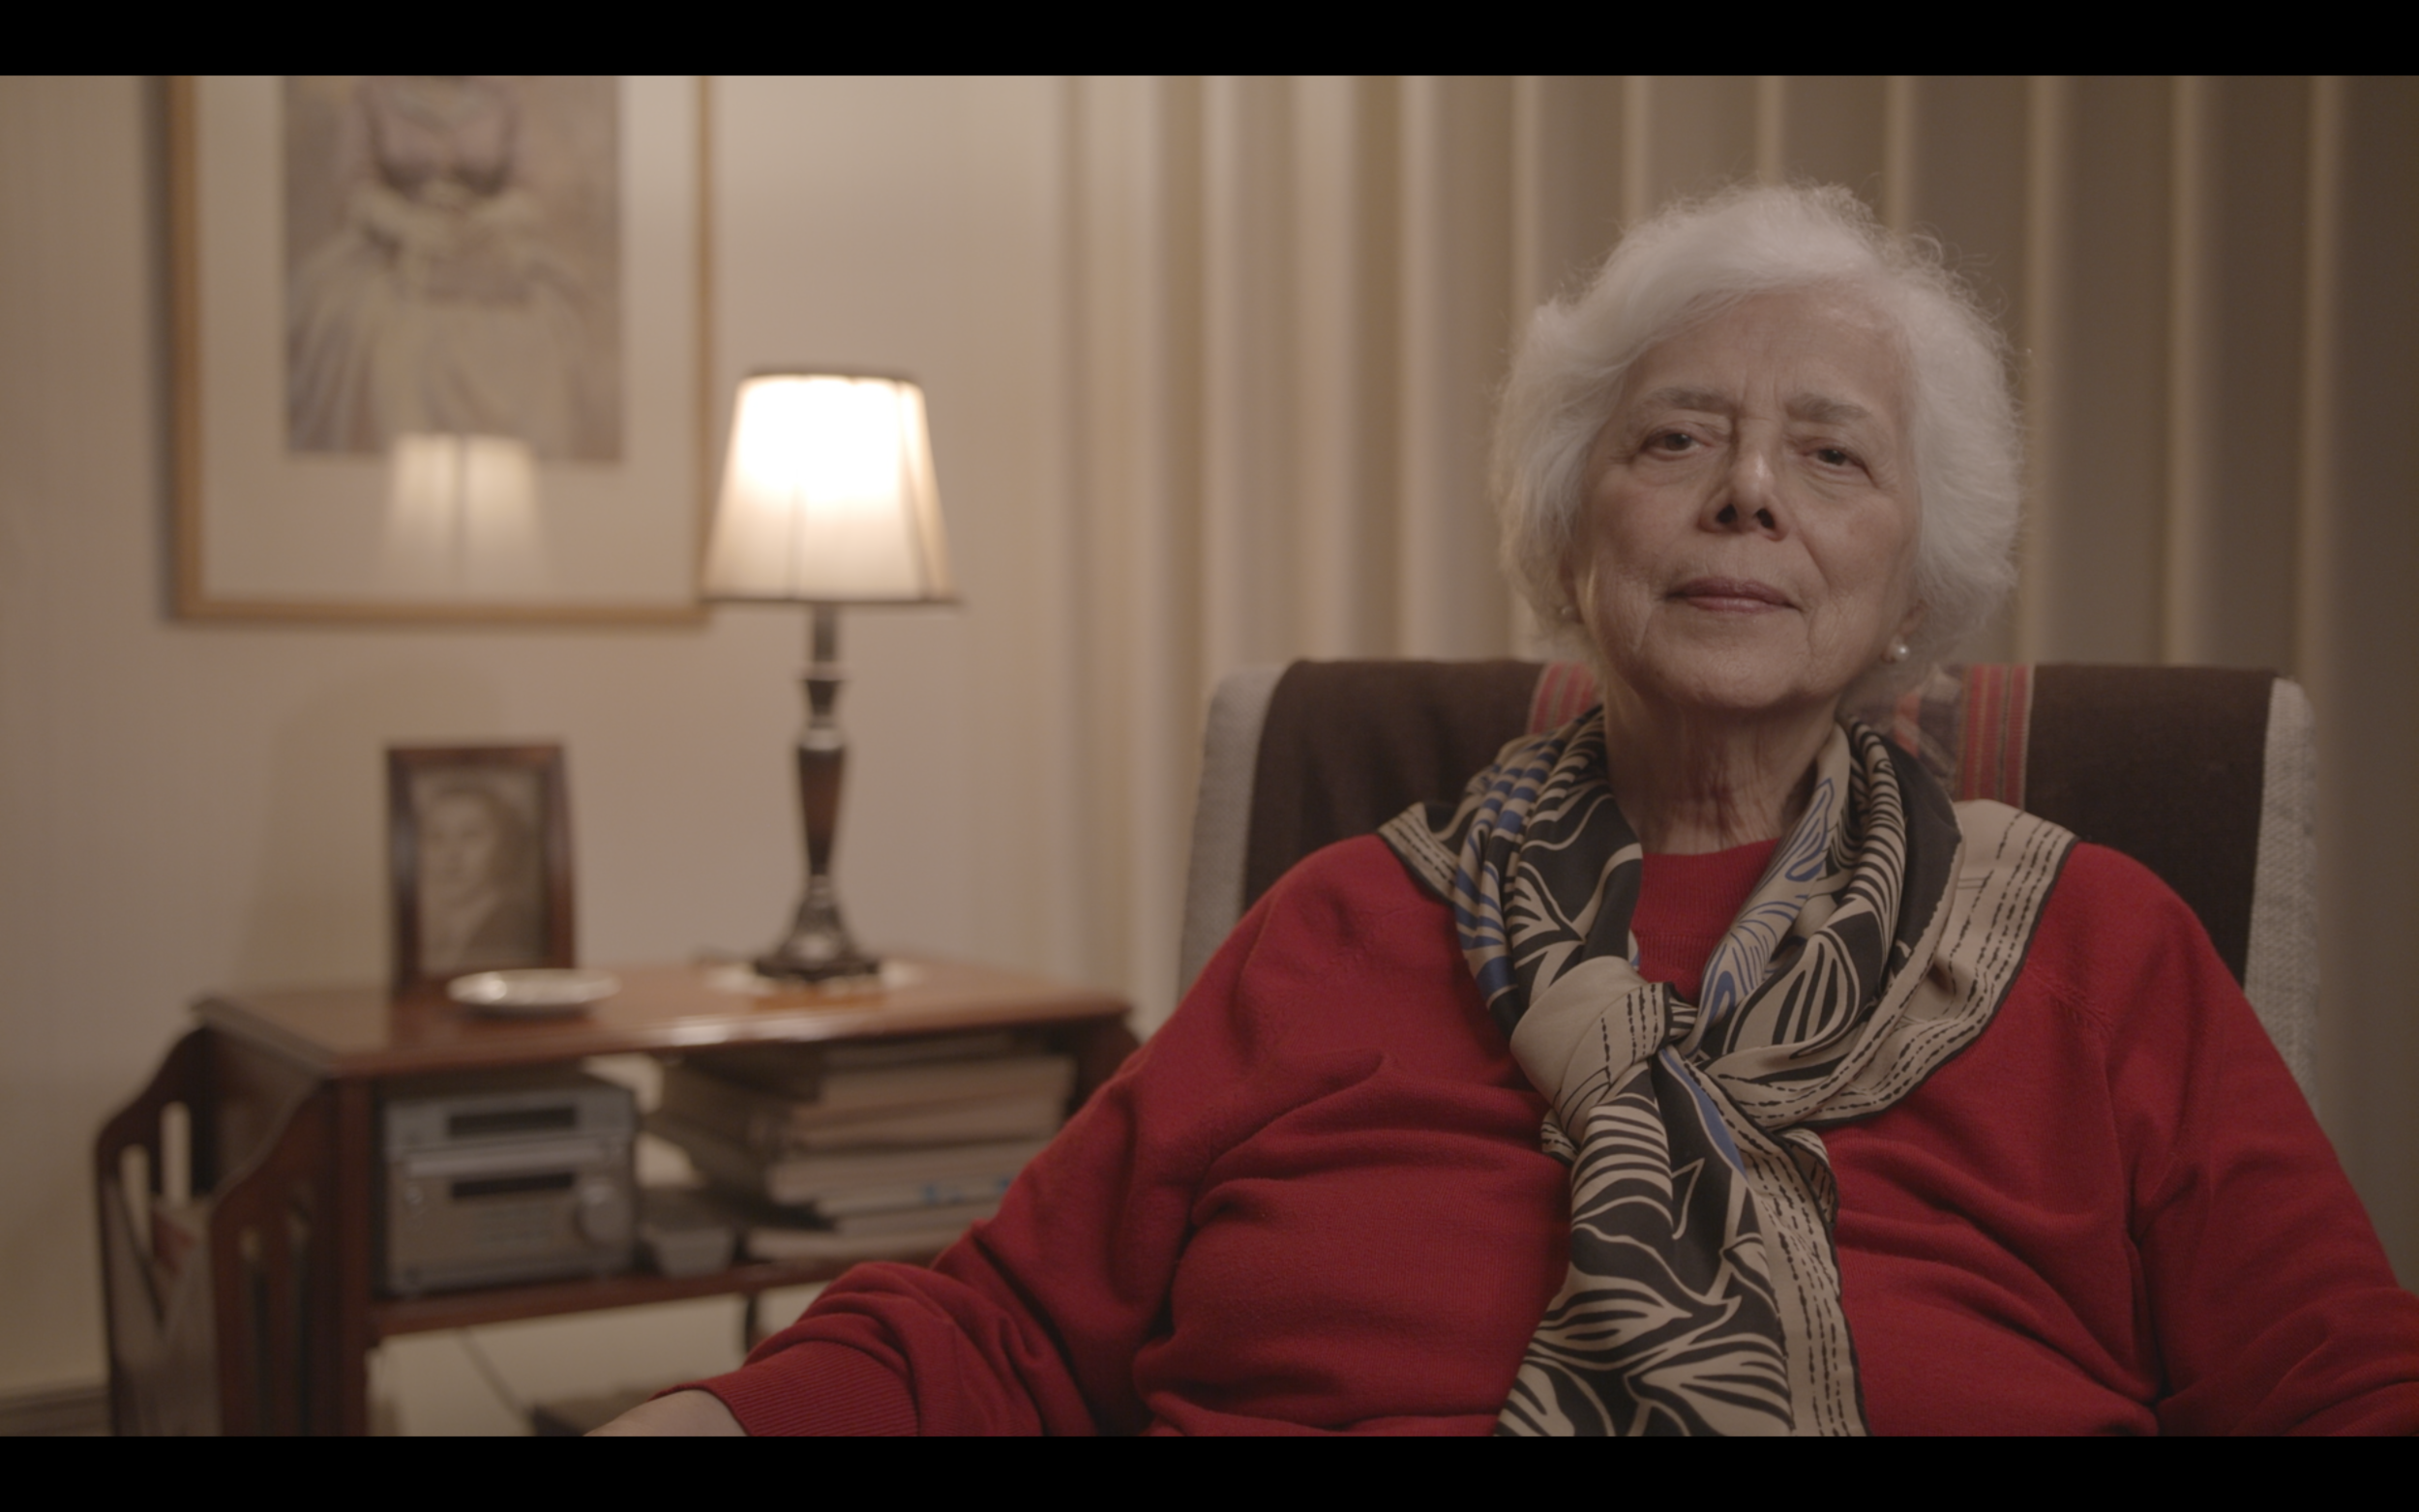 Still from our interview with Eliana Ortega, Professor of Literature and a literary critic. (Not color corrected.)